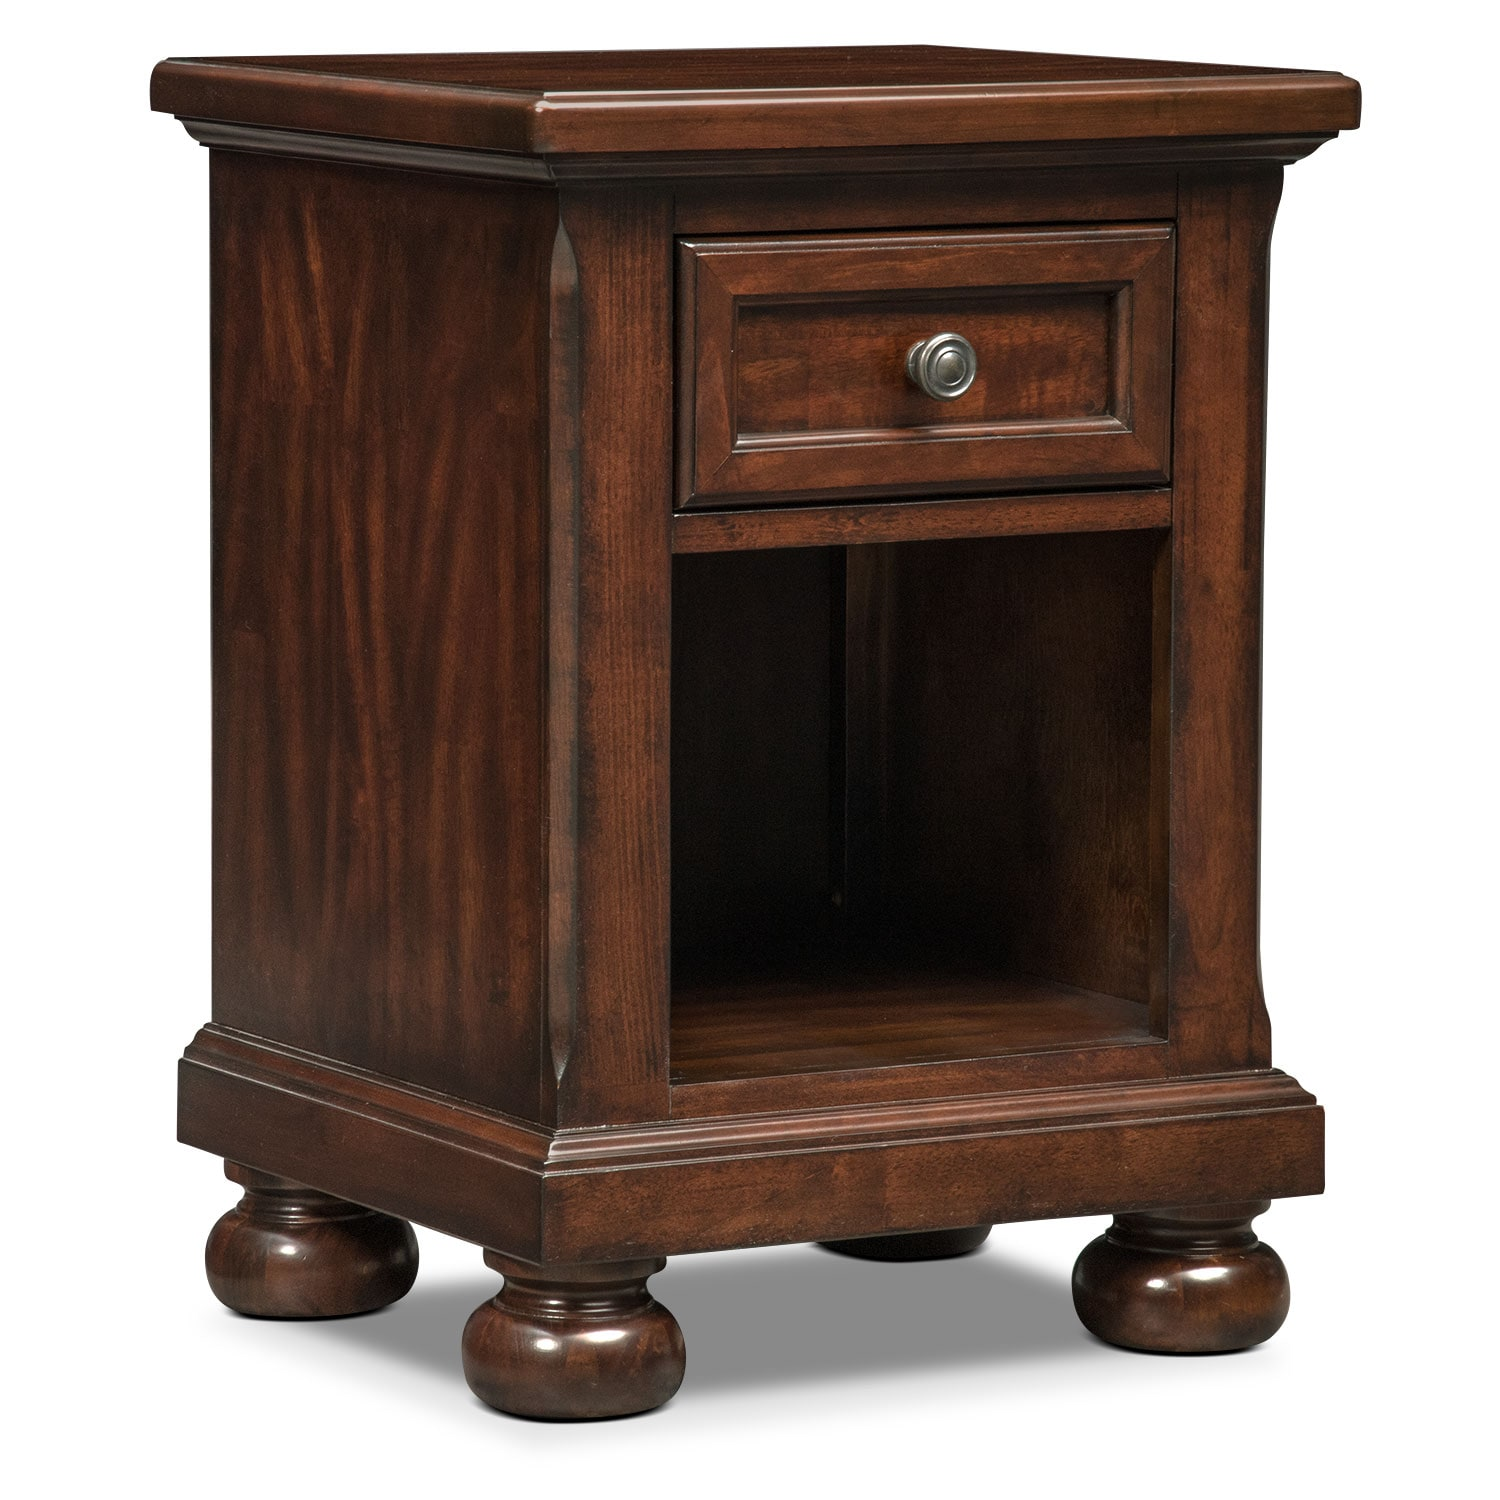 Hanover Youth Nightstand - Cherry